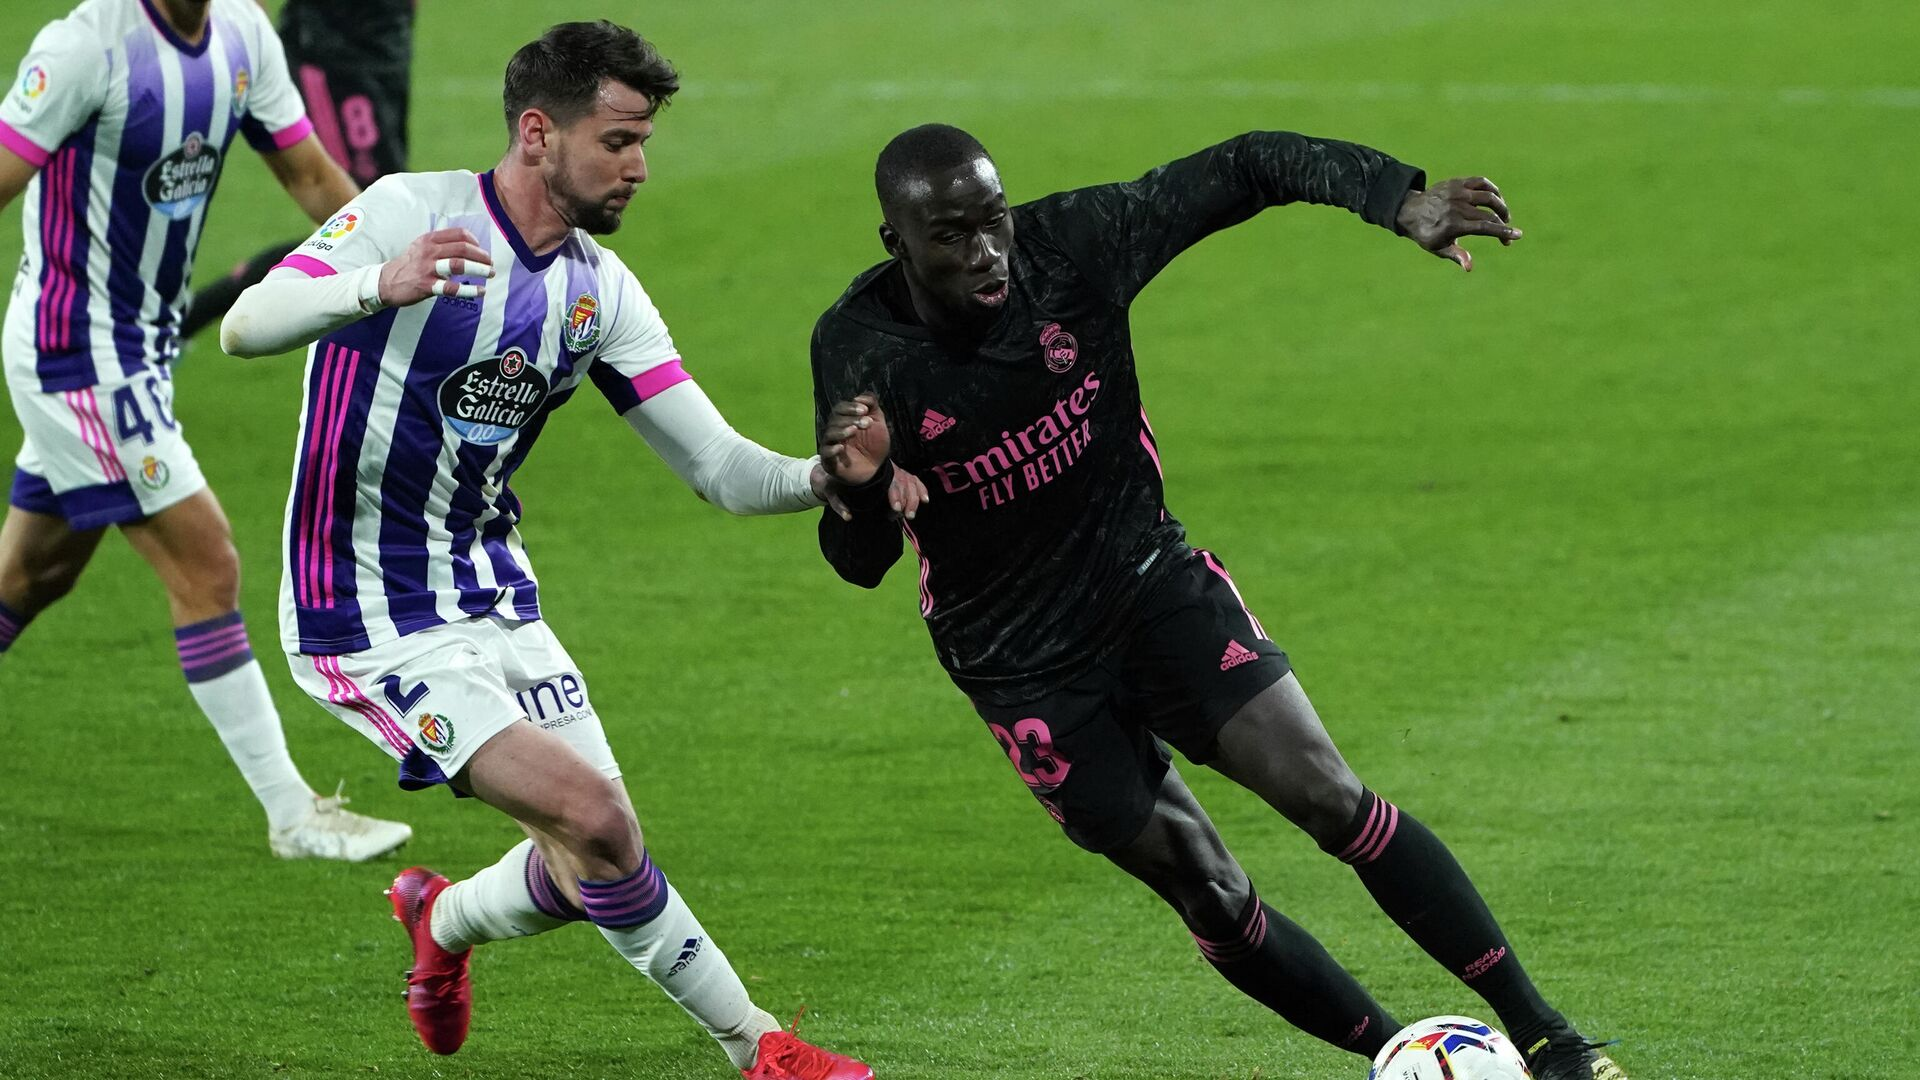 Real Madrid's French defender Mendy (R) vies with Real Valladolid's Spanish defender Luis Perez  during the Spanish league football match between Real Valladolid FC and Real Madrid CF at the Jose Zorilla stadium in Valladolid on February 20, 2021. (Photo by Cesar Manso / AFP) - РИА Новости, 1920, 21.02.2021